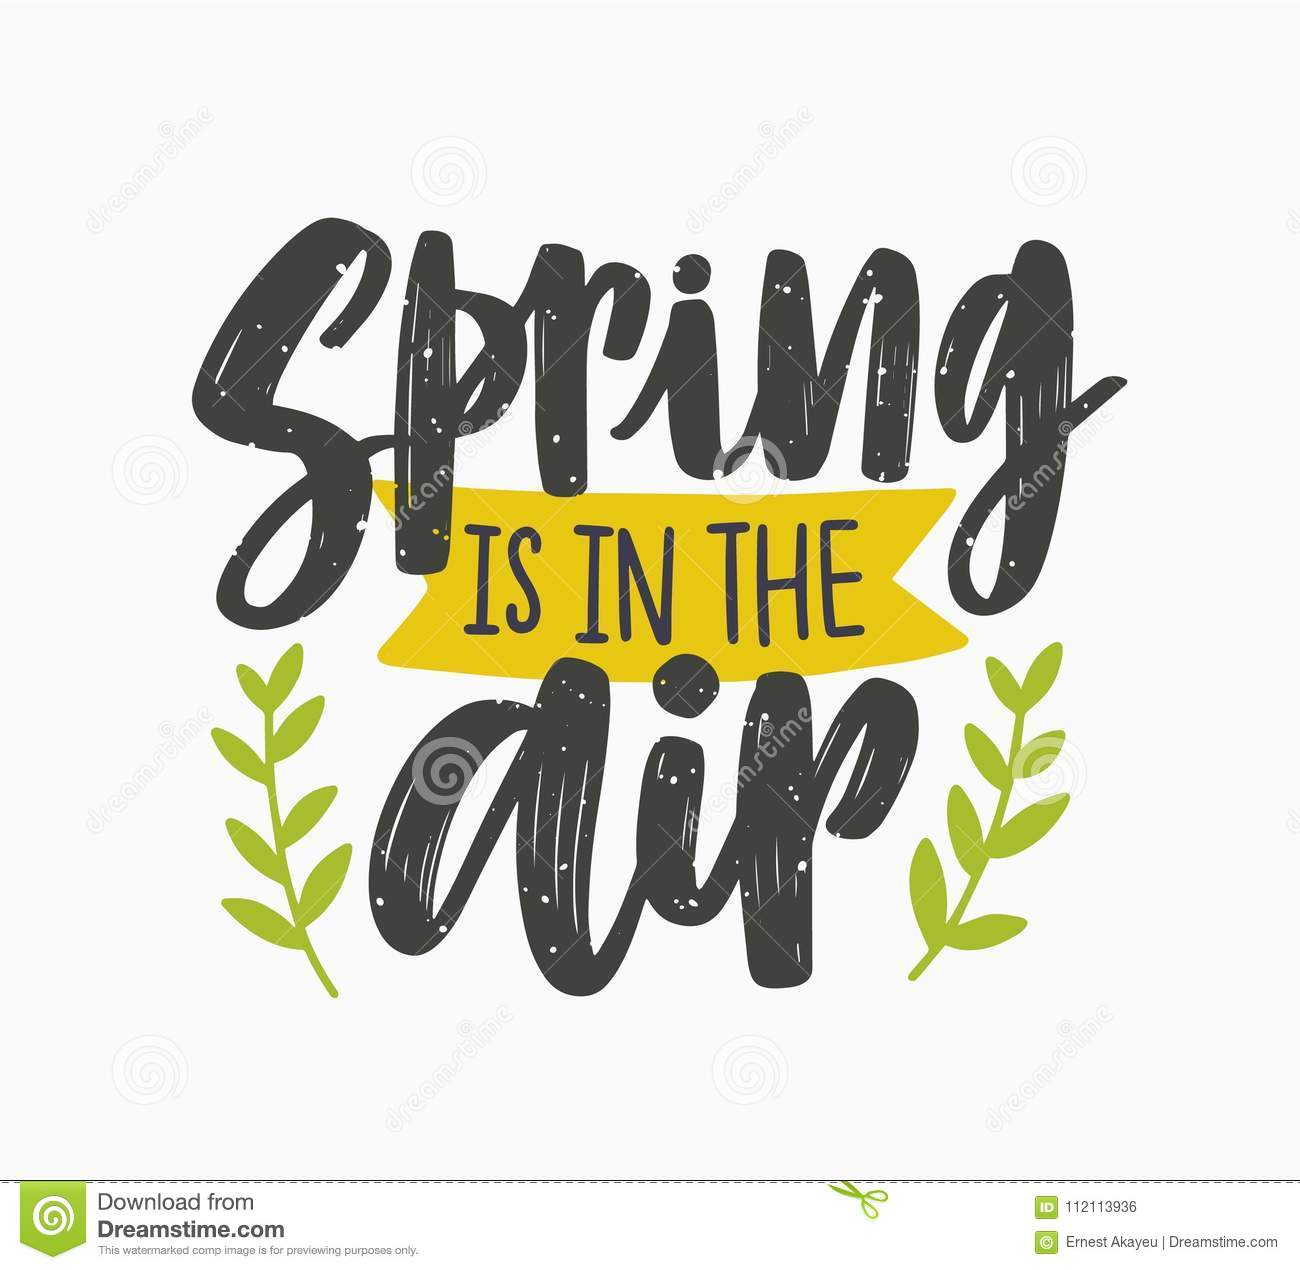 Spring Is In The Air Inspiring Phrase Written With Artistic Cursive Font Or Script And Decorated Green Leaves